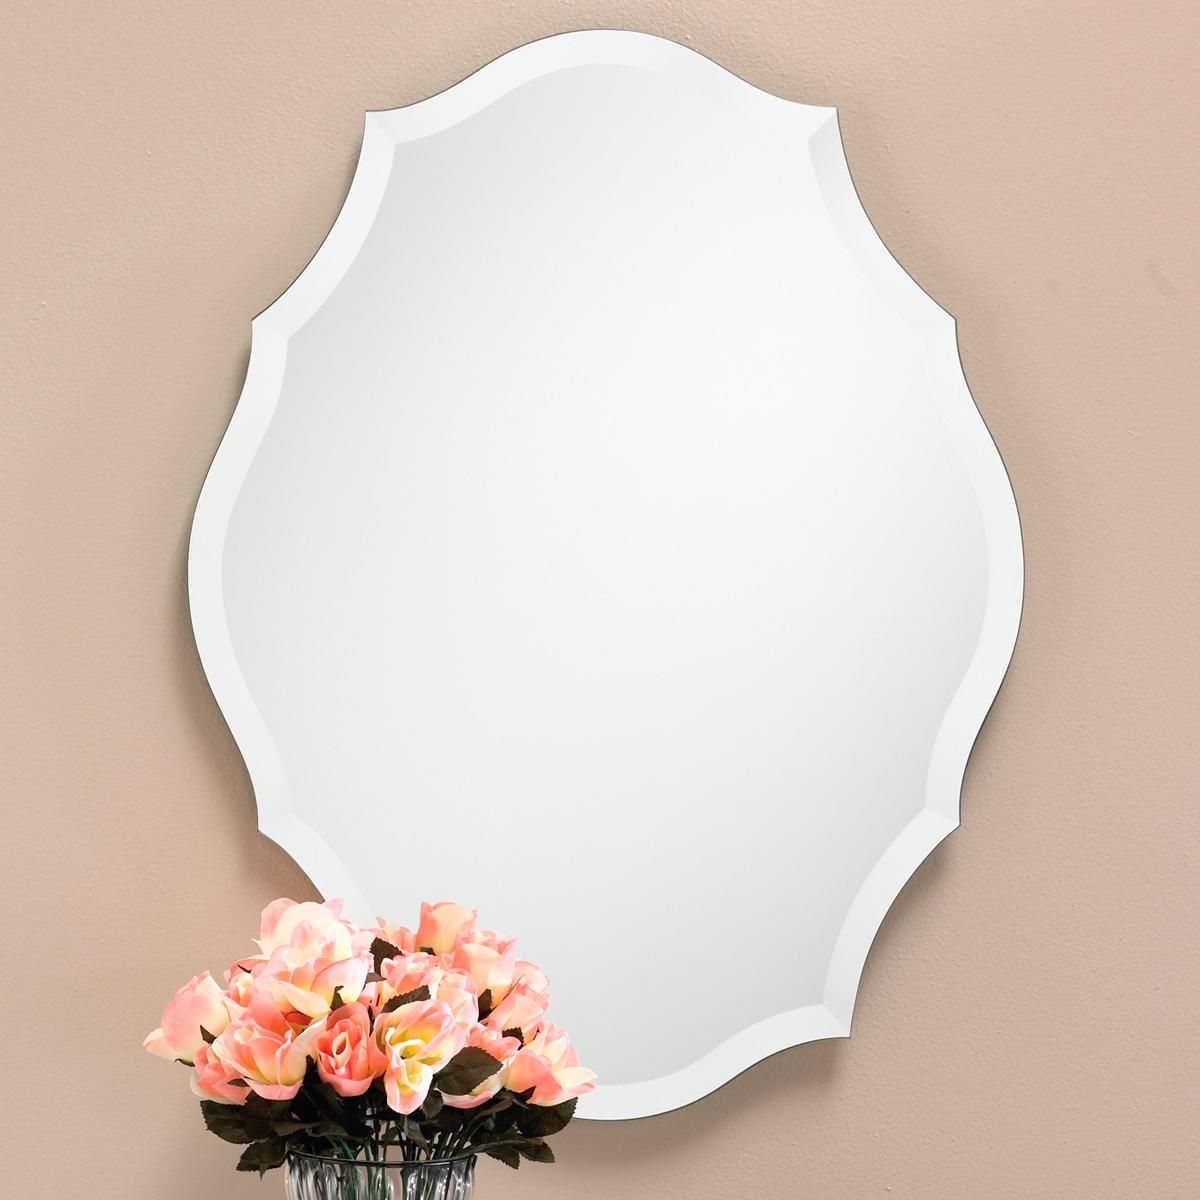 Beveled Shield Shaped Frameless Mirror Shades Of Light 299 Can T Believe This Price Mine Is Smaller But I Got It Much Er At Target